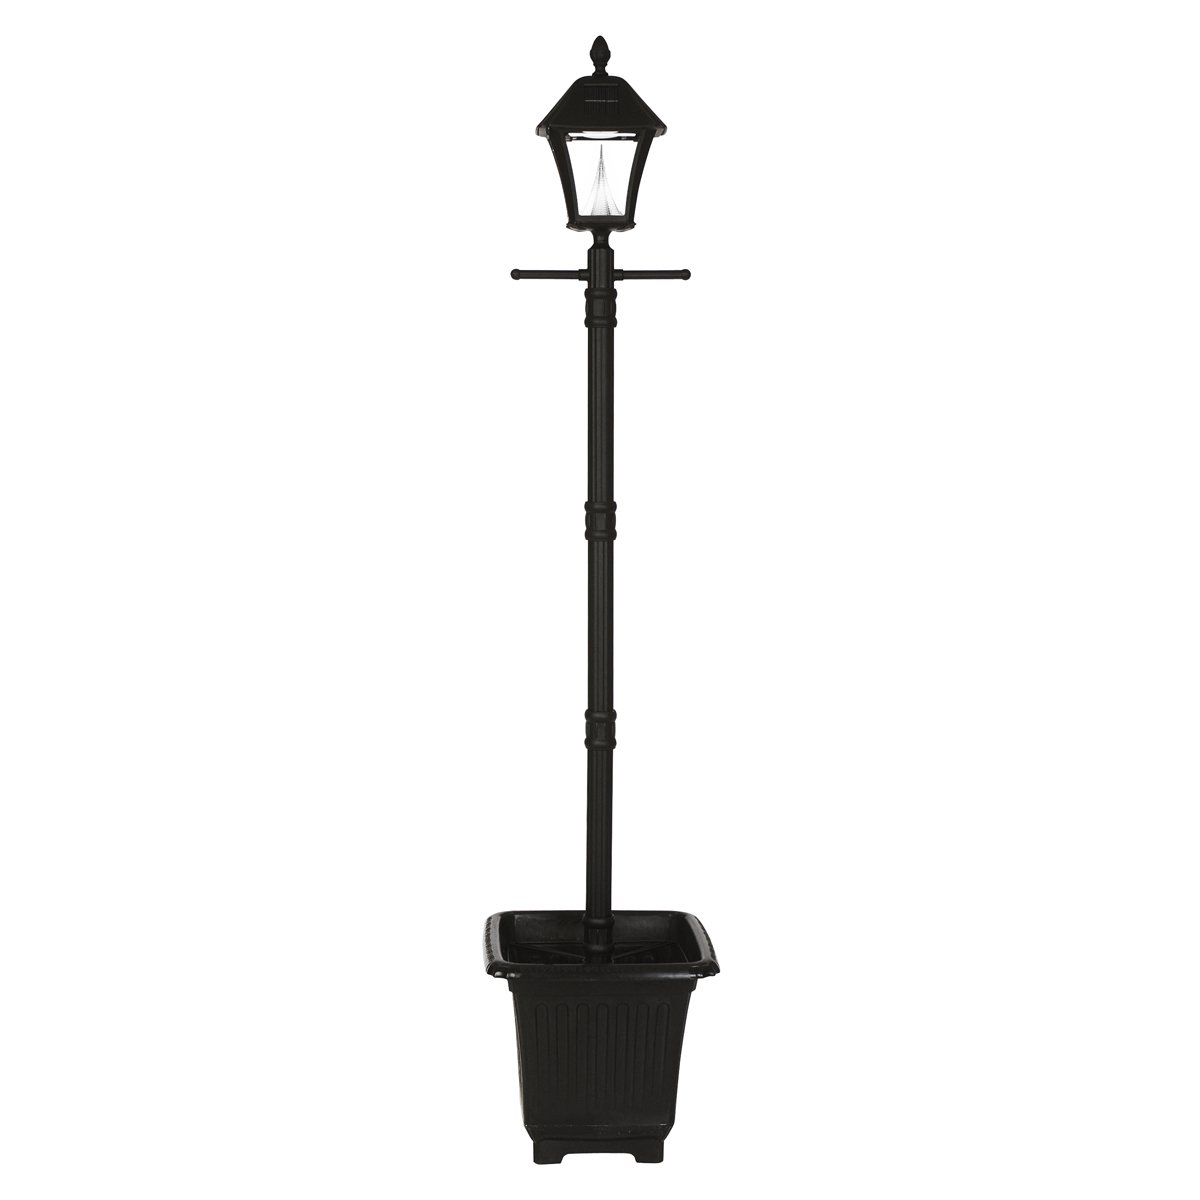 Gama Sonic Baytown Solar Lamp Post and Single Lamp LED Light Fixture, Planter Base, 77-Inch Height, Black Finish #GS-106PL